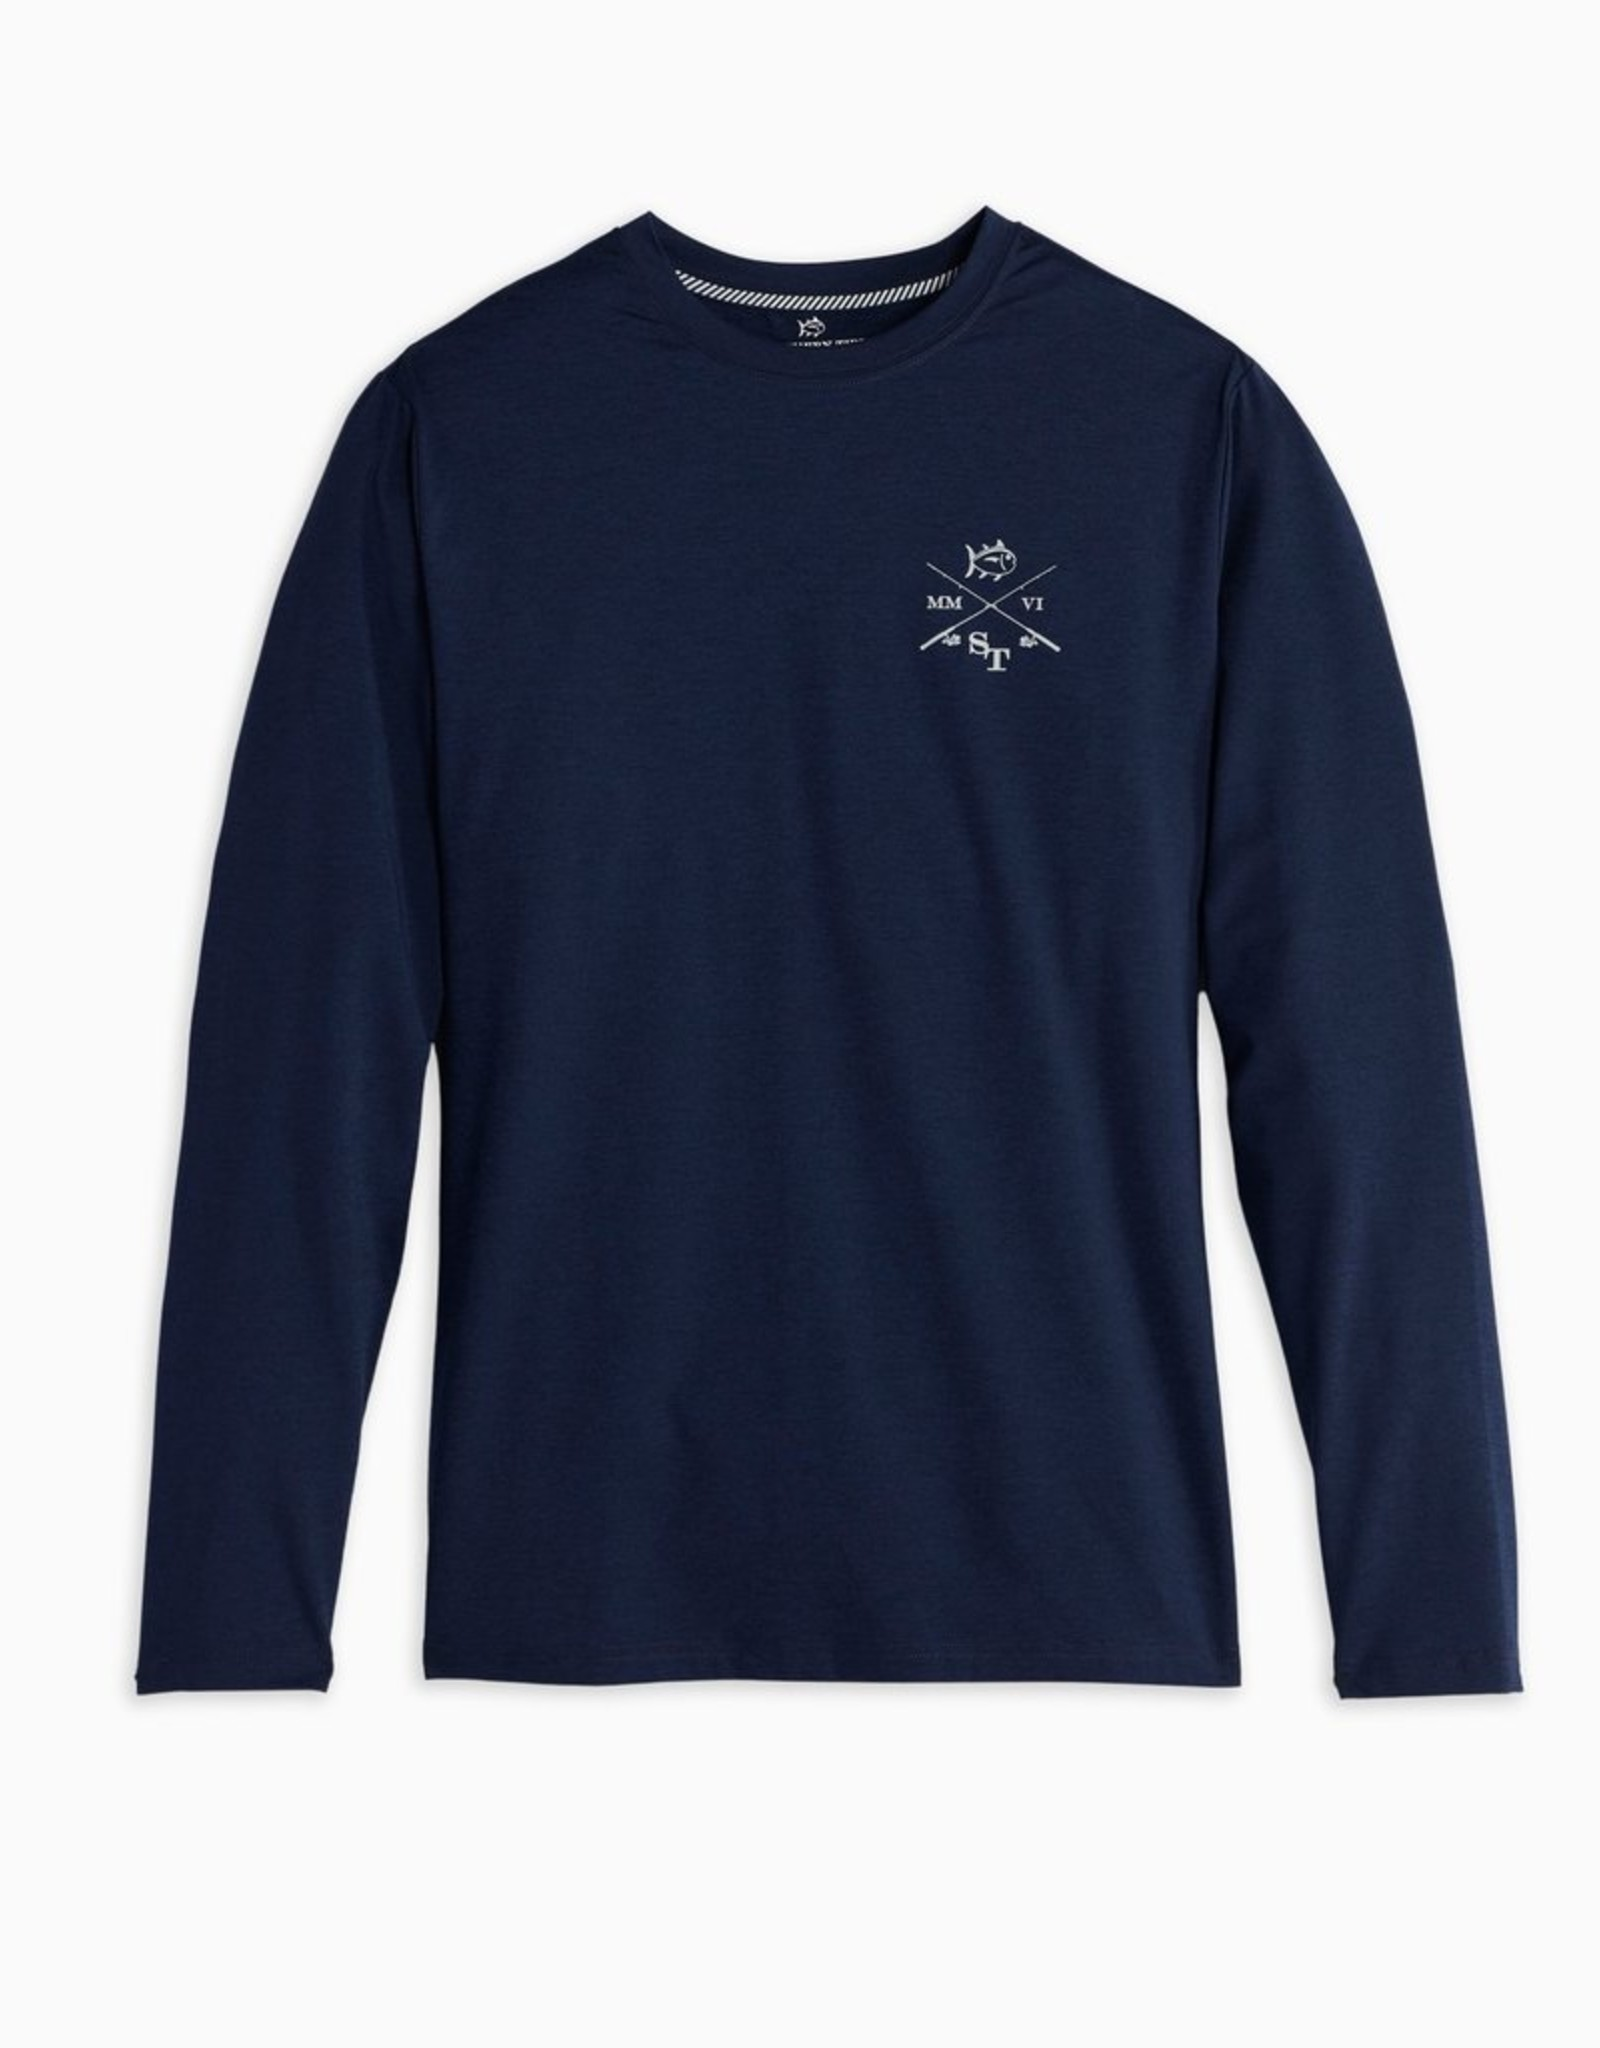 Southern Tide Crossed Fishing Performance Tee